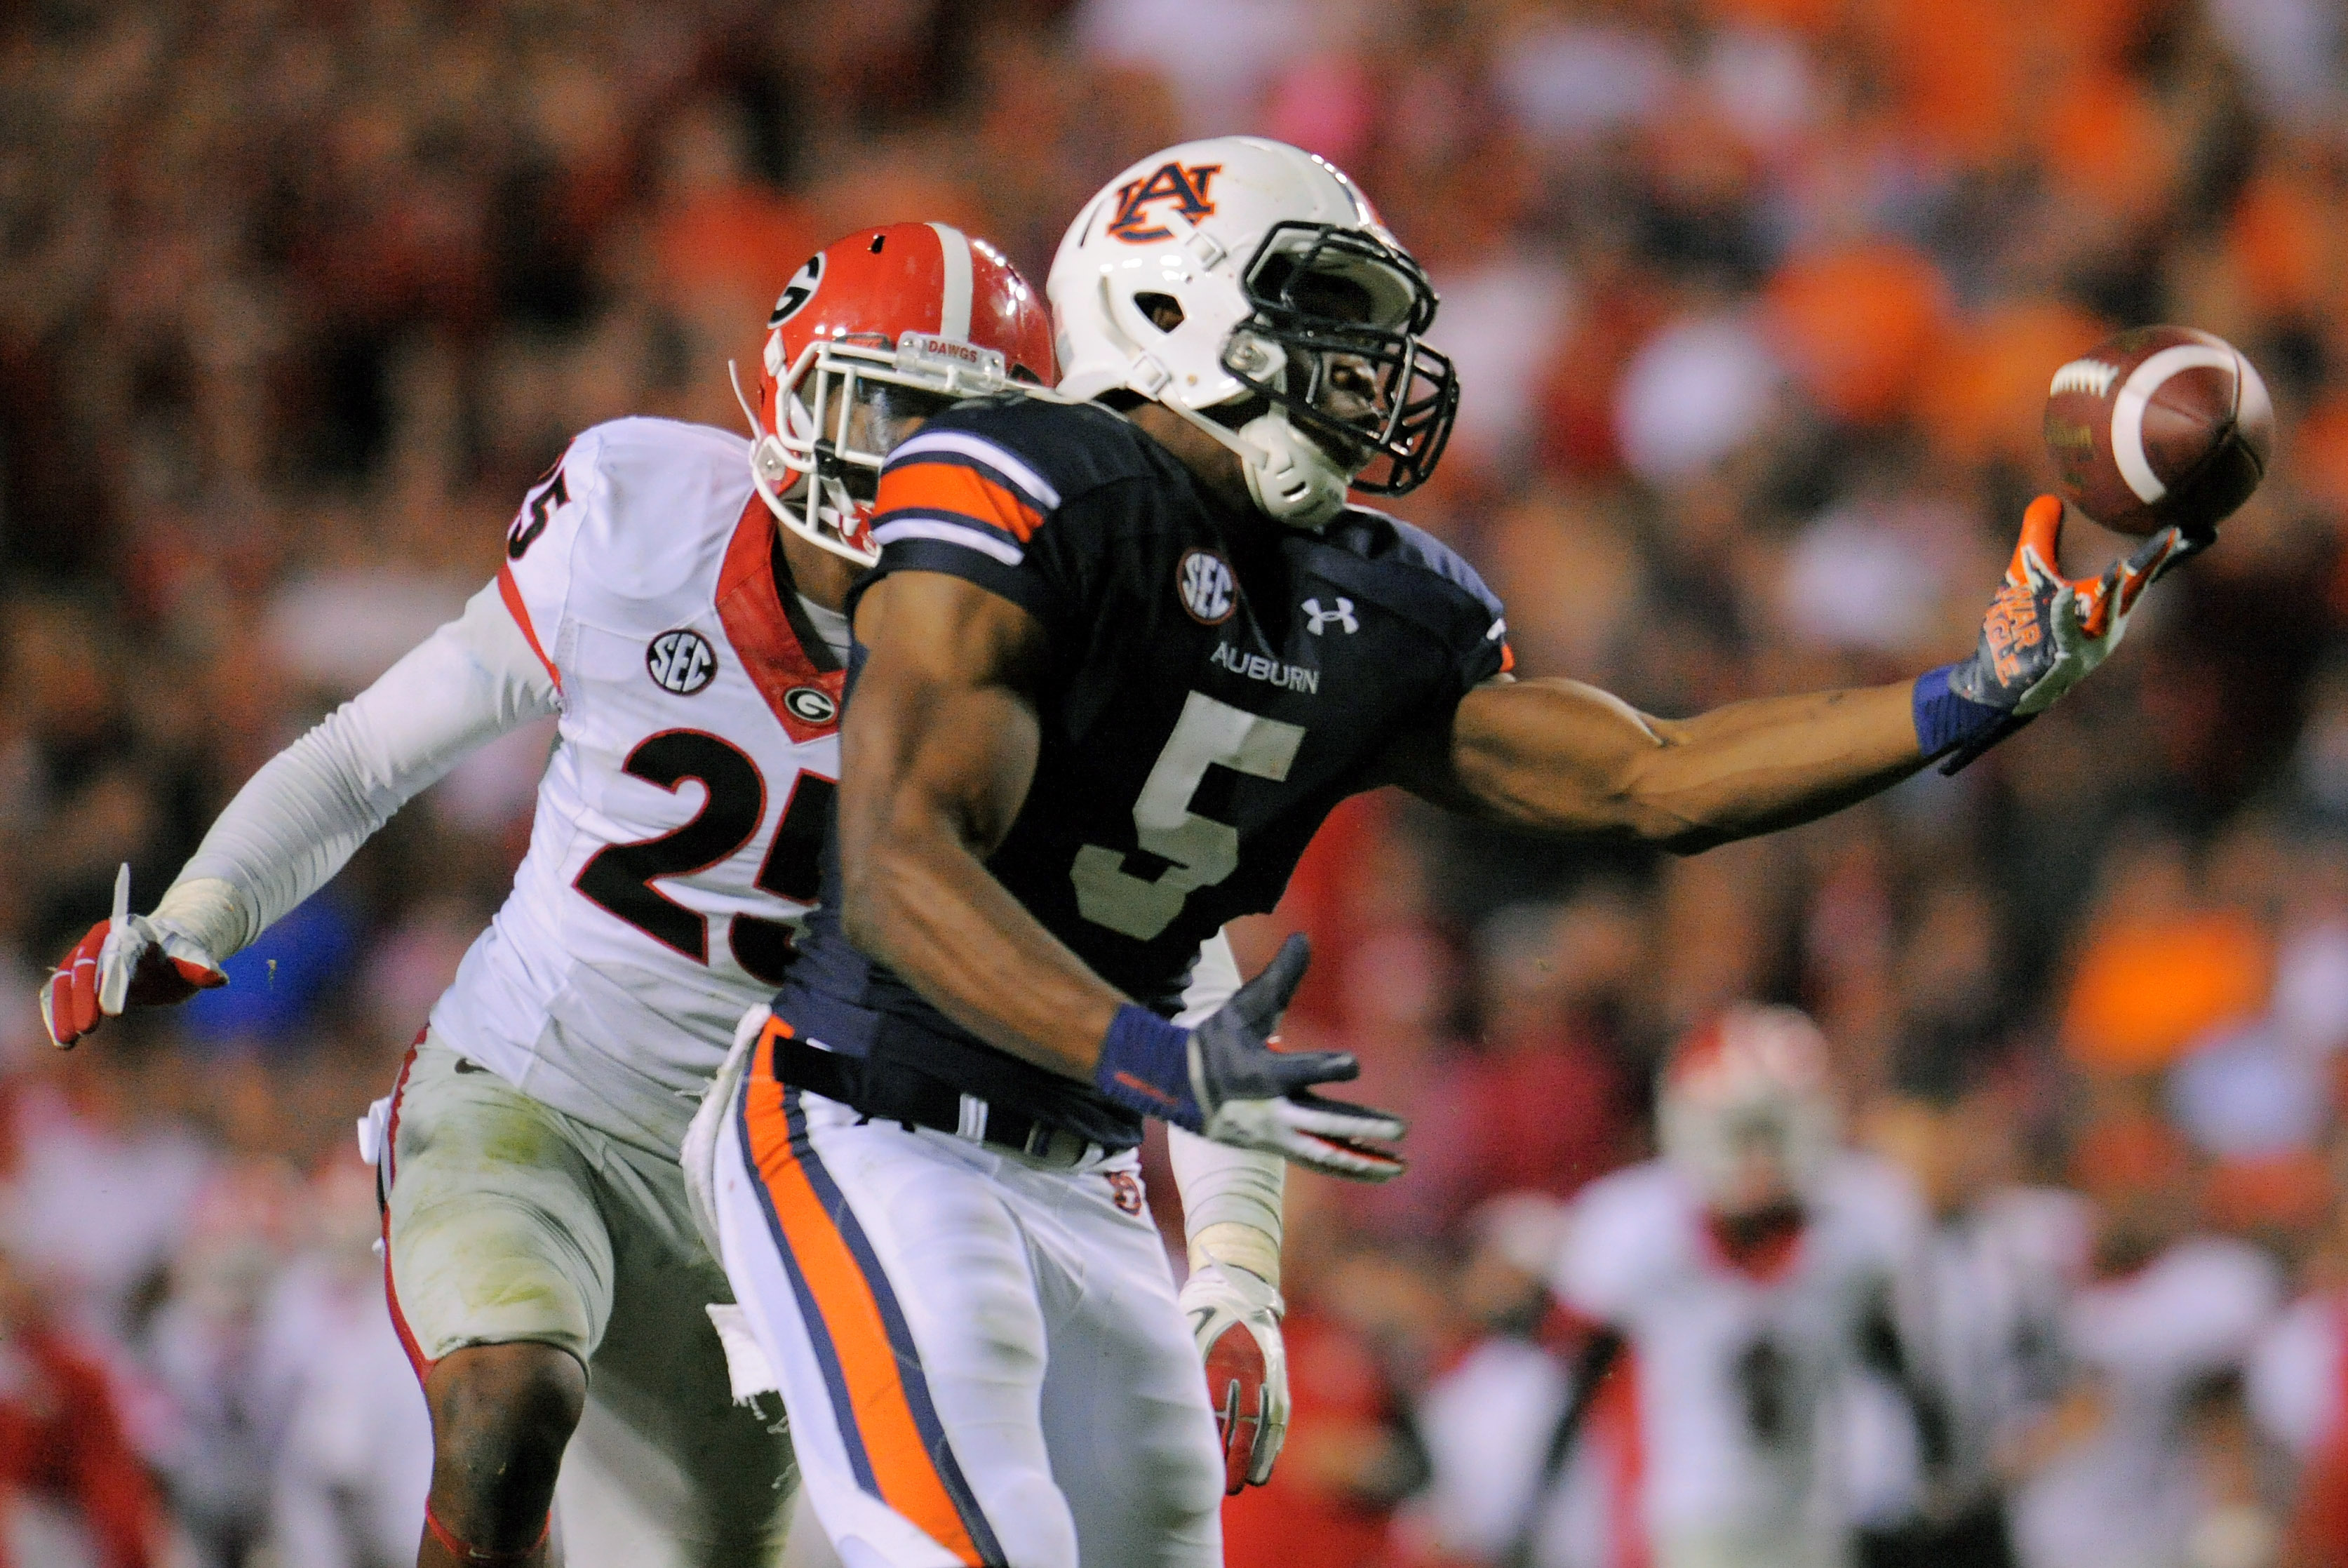 """The wrong read on """"Little Rock"""" gave us the Miracle in Jordan-Hare, but how was it supposed to work?"""